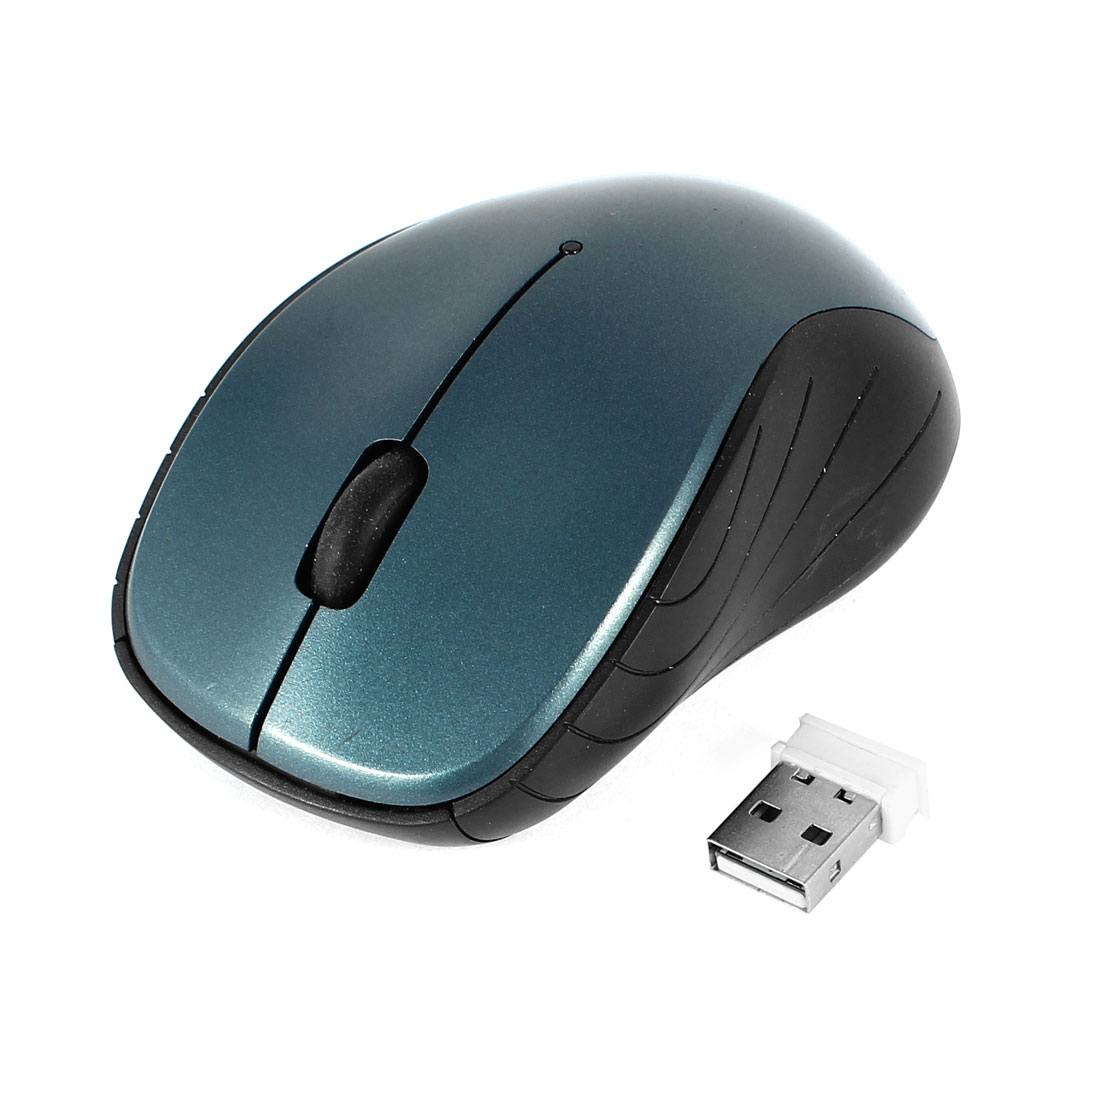 USB Receiver 2.4GHz 800/1600DPI Wireless Optical Mouse Mice Blue Black for PC Computer